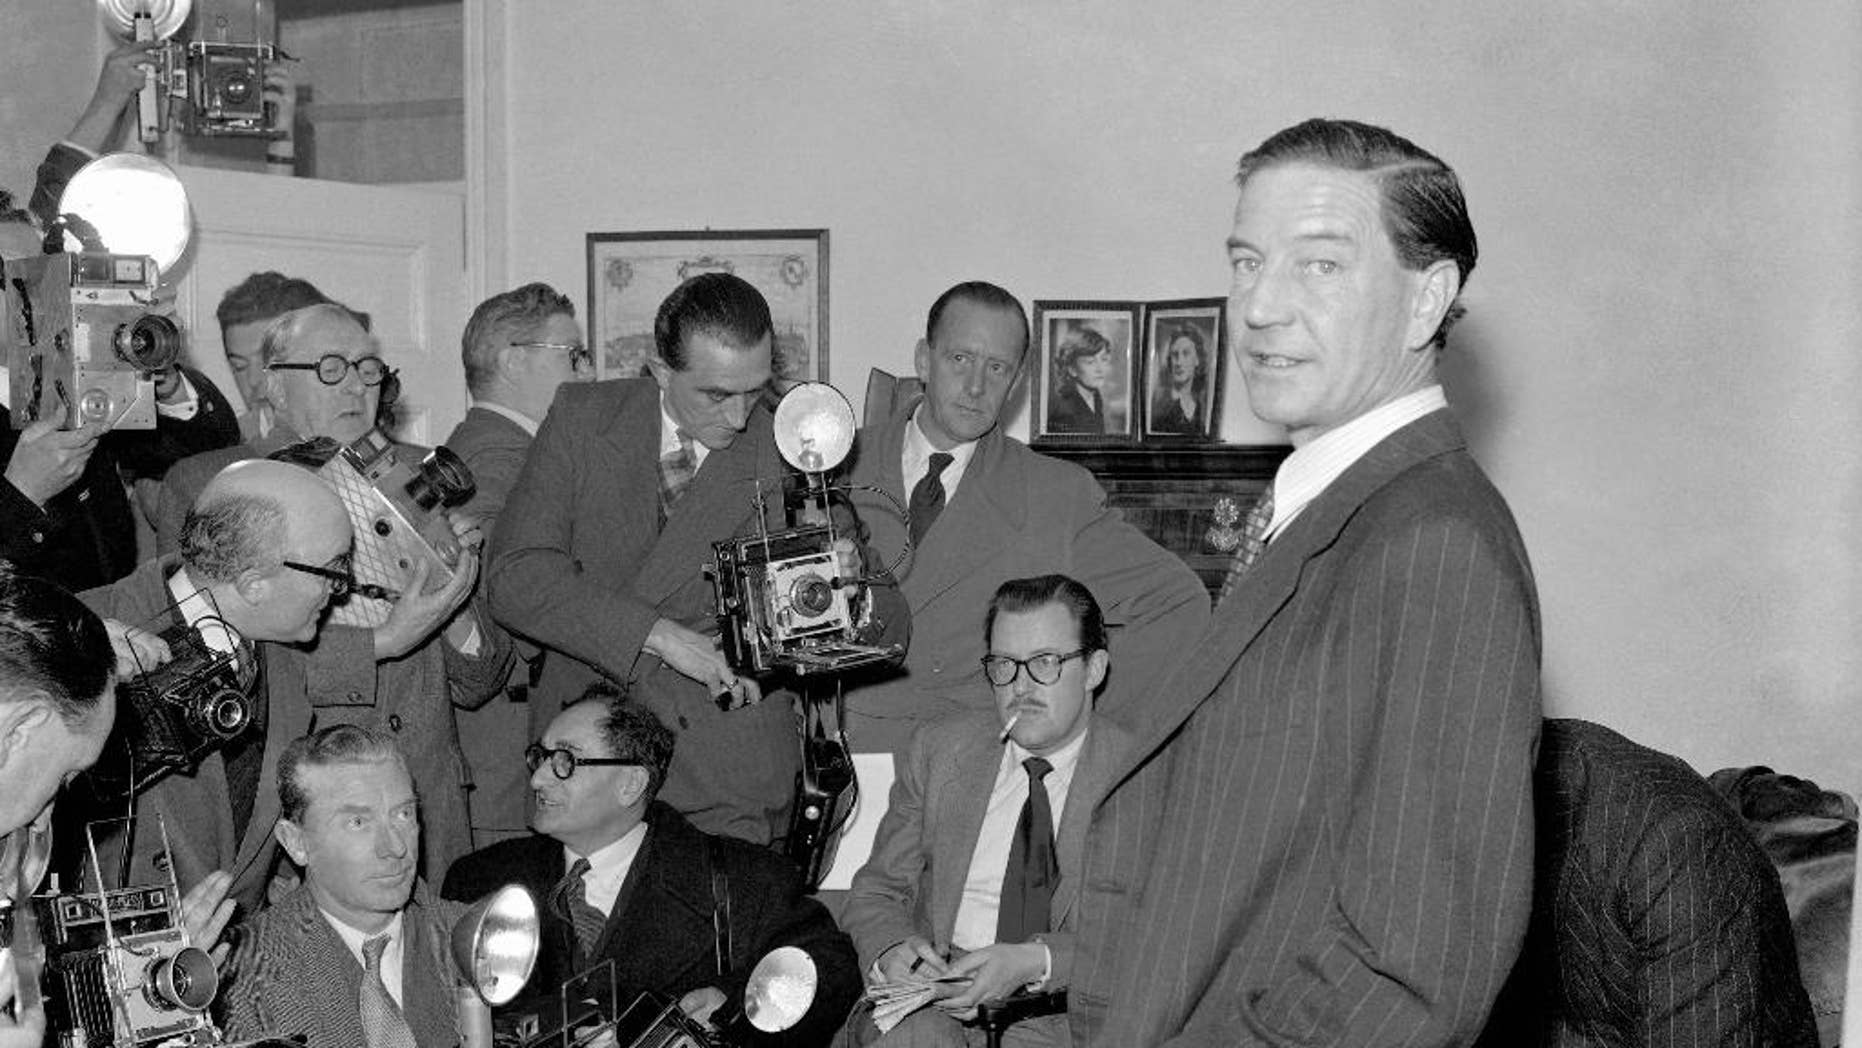 "FILE - In this file photo dated Nov. 8, 1955, former British diplomat who was at that time accused of spying for Russia, during a press conference at his parents' home in London on Nov. 8, 1955.  In a 1981 film posted online Monday April 4, 2016, by the BBC, notorious British spy Kim Philby is shown in newly uncovered footage addressing East German spies, ""comrades"", about his life as a double agent secretly helping the Soviet Union, in what is the closest thing to a full confession yet to surface. Philby died in 1988 in his adopted Soviet homeland. (AP Photo/FILE)"